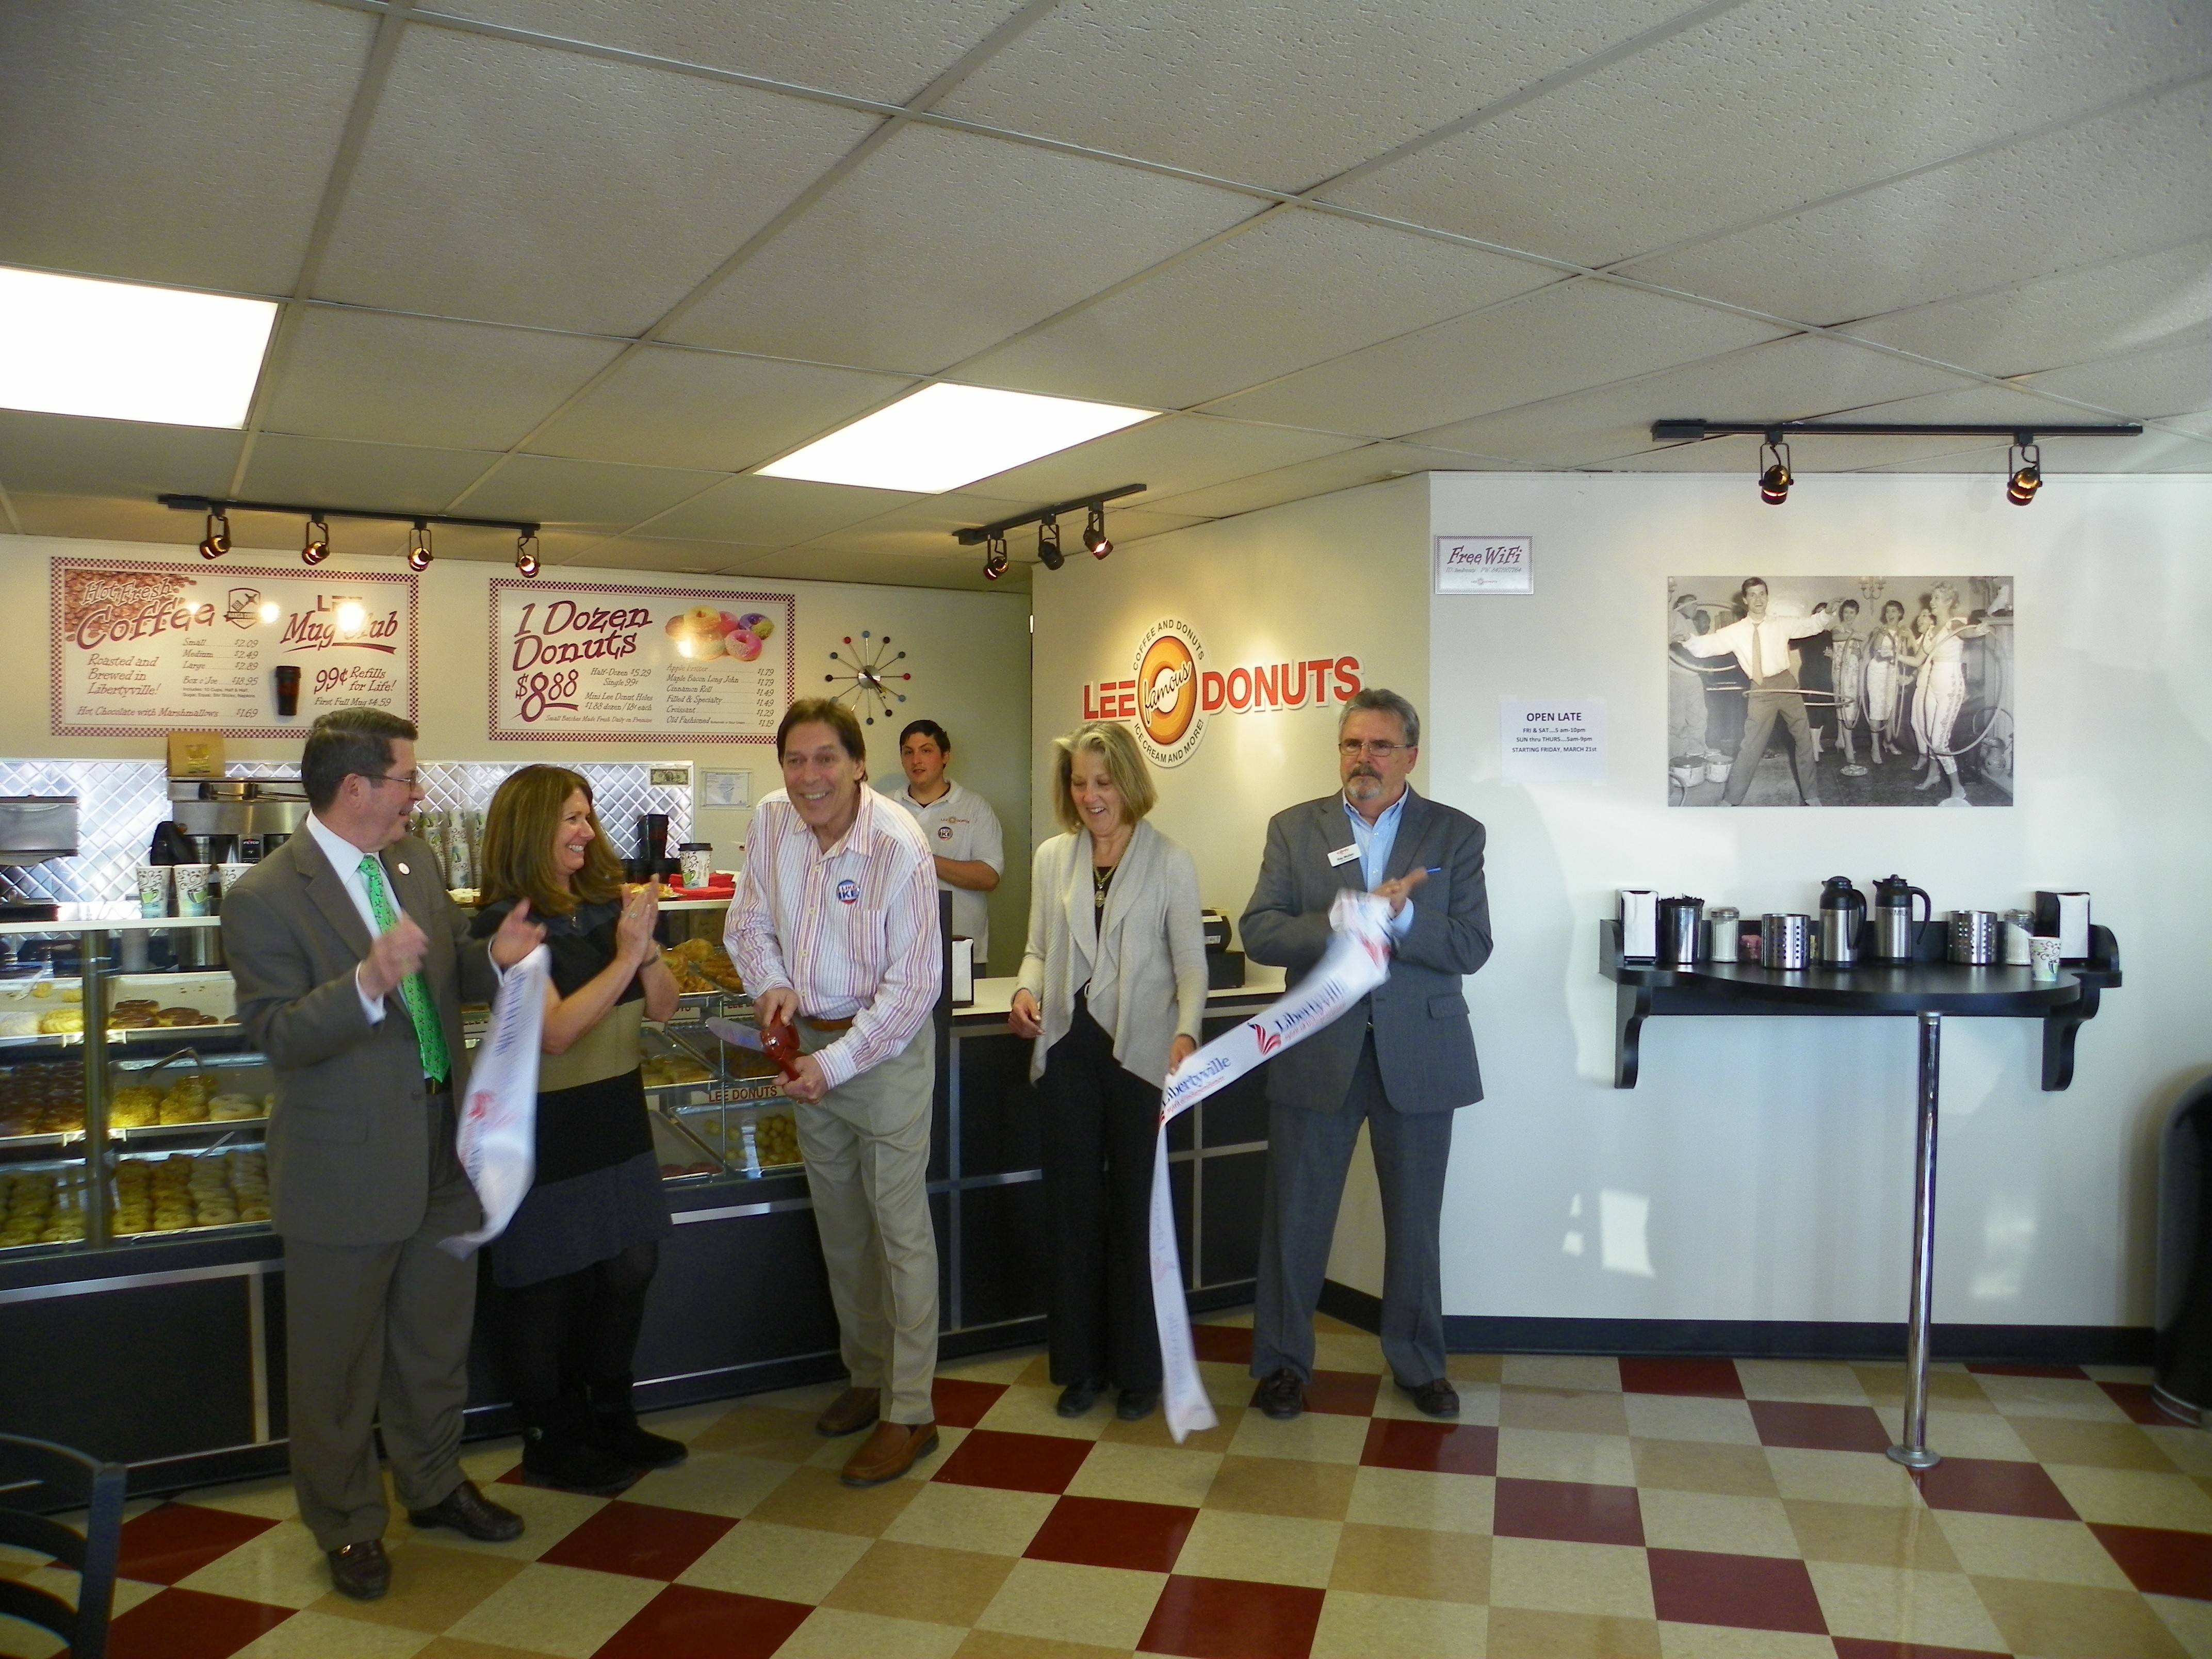 Owner Bill Kaiser cuts the ribbon at Lee Donuts with Mayor Terry Weppler. From left, Bill's wife Francine Kaiser, MainStreet Libertyville Executive Director Pam Hume and GLMV Executive Director Ray Mullen looking on.